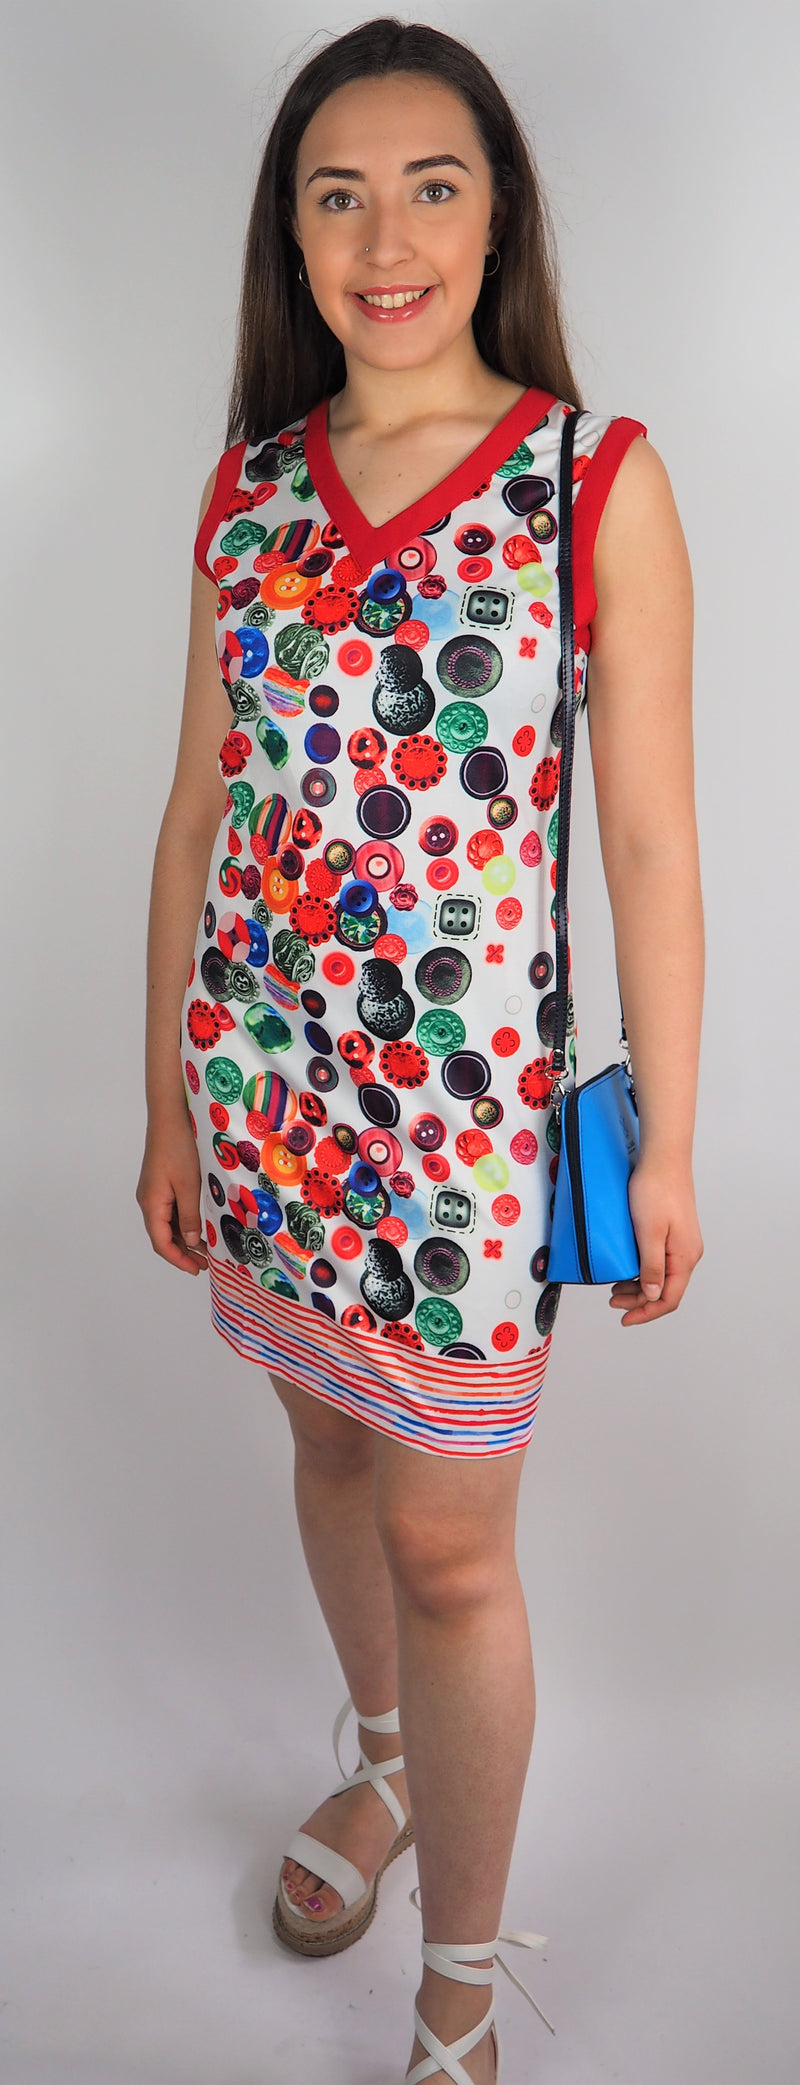 Husen Moda Multi Print Dress